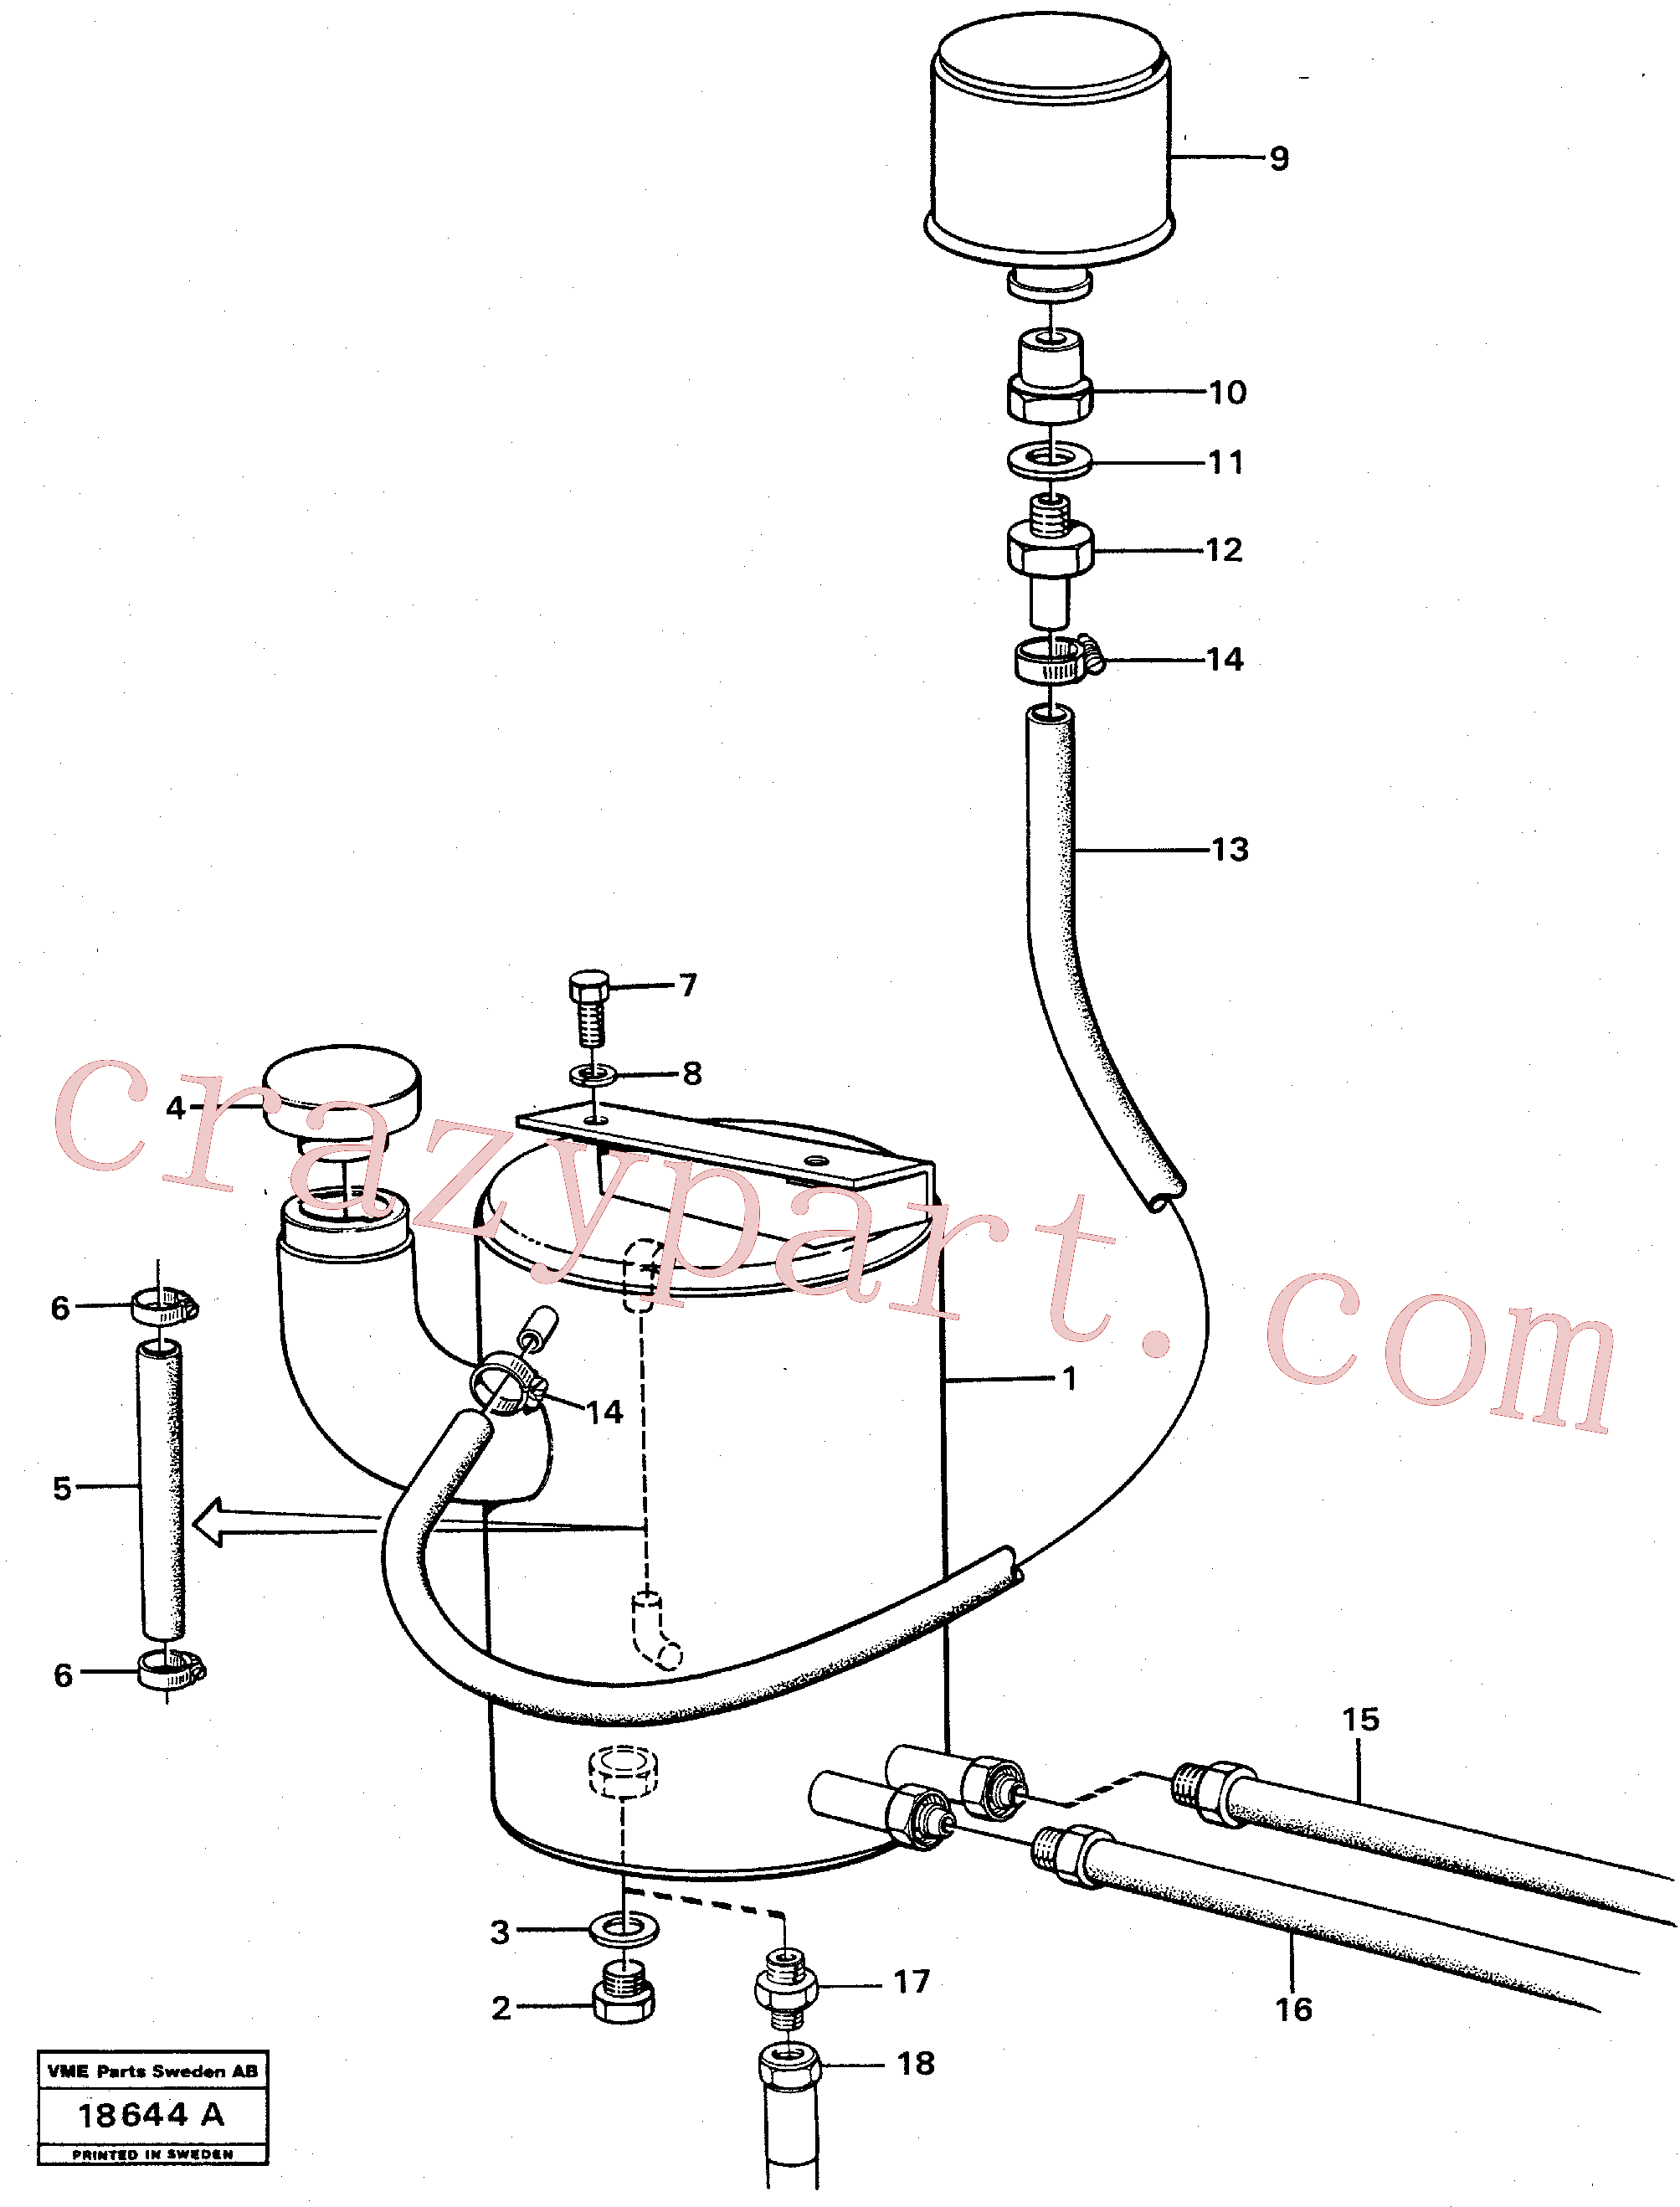 VOE421753 for Volvo Tank with fitting parts(18644A assembly)